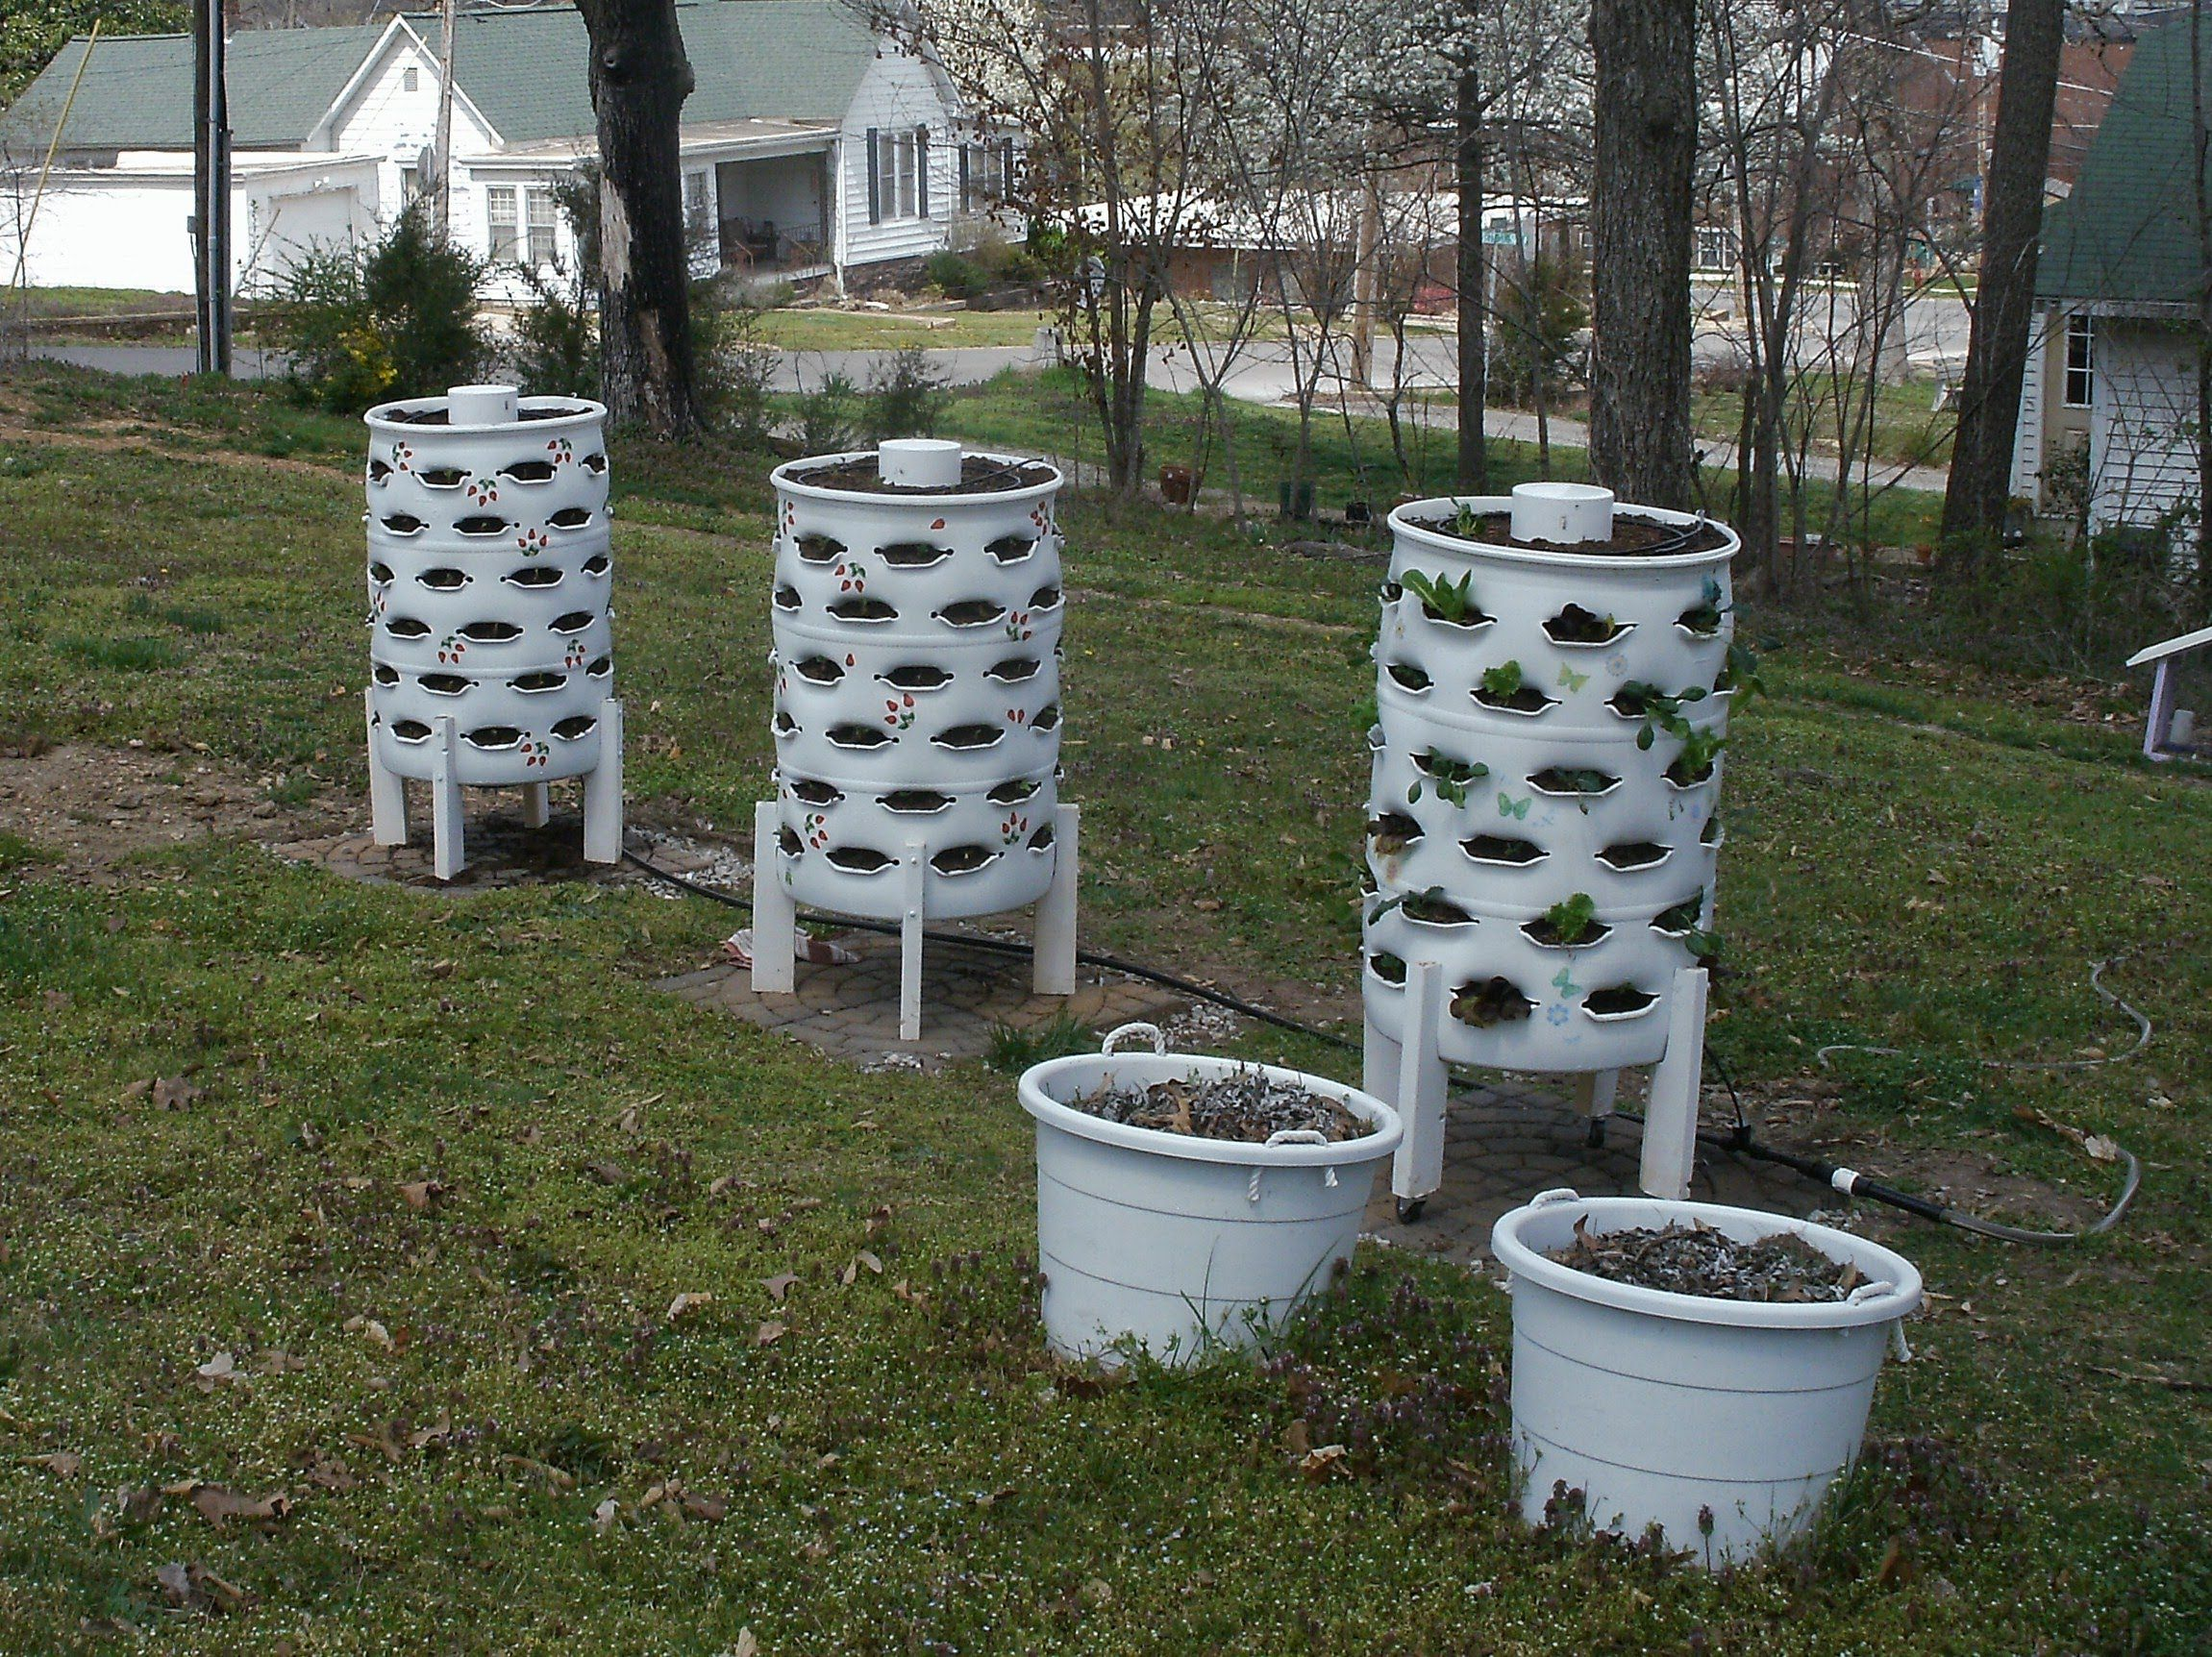 DIY container garden with composting tower in the middle space